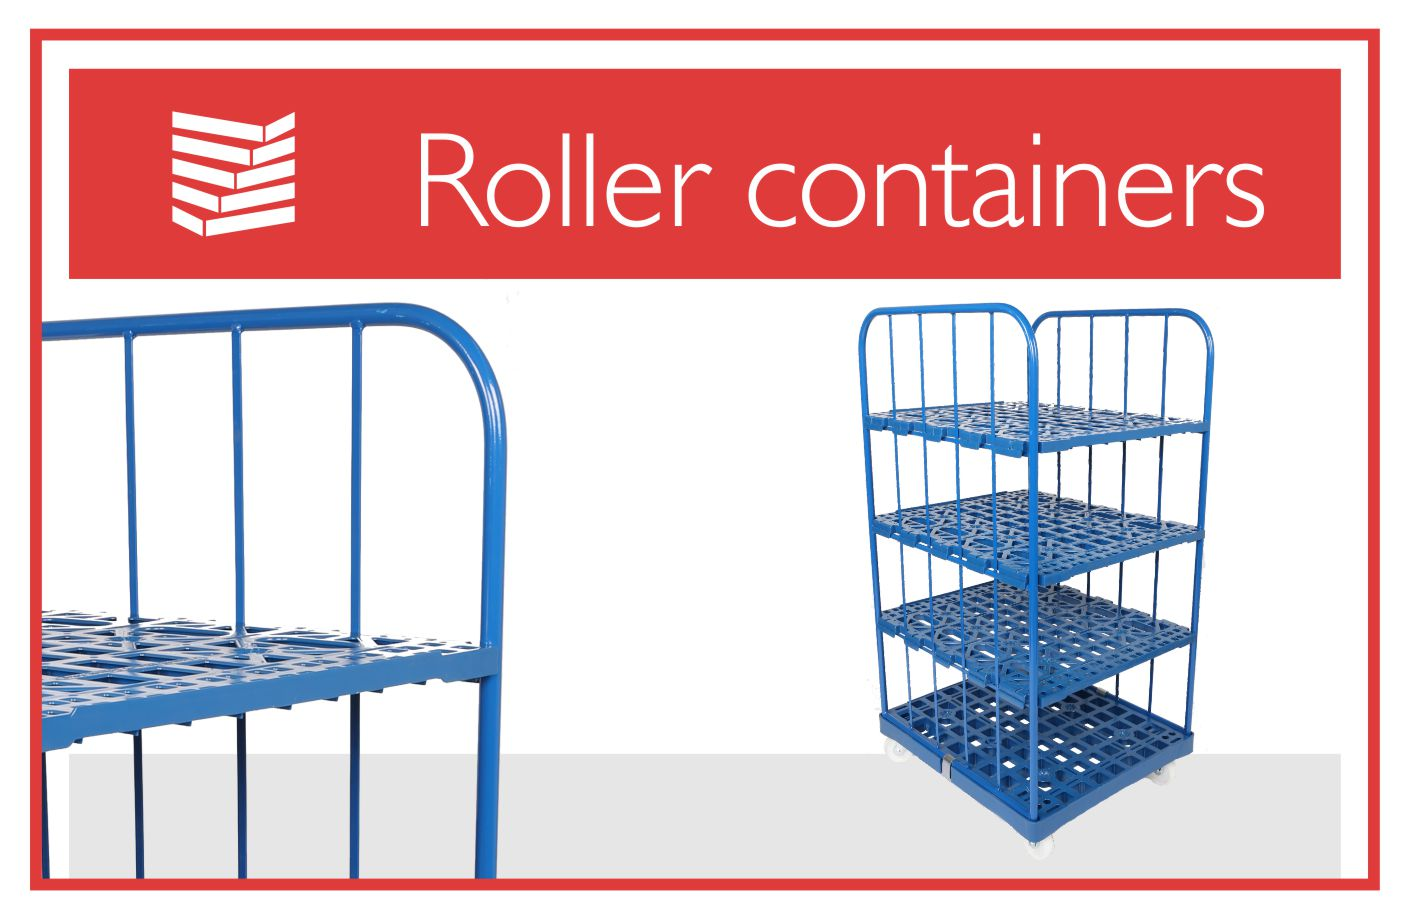 Roller containers